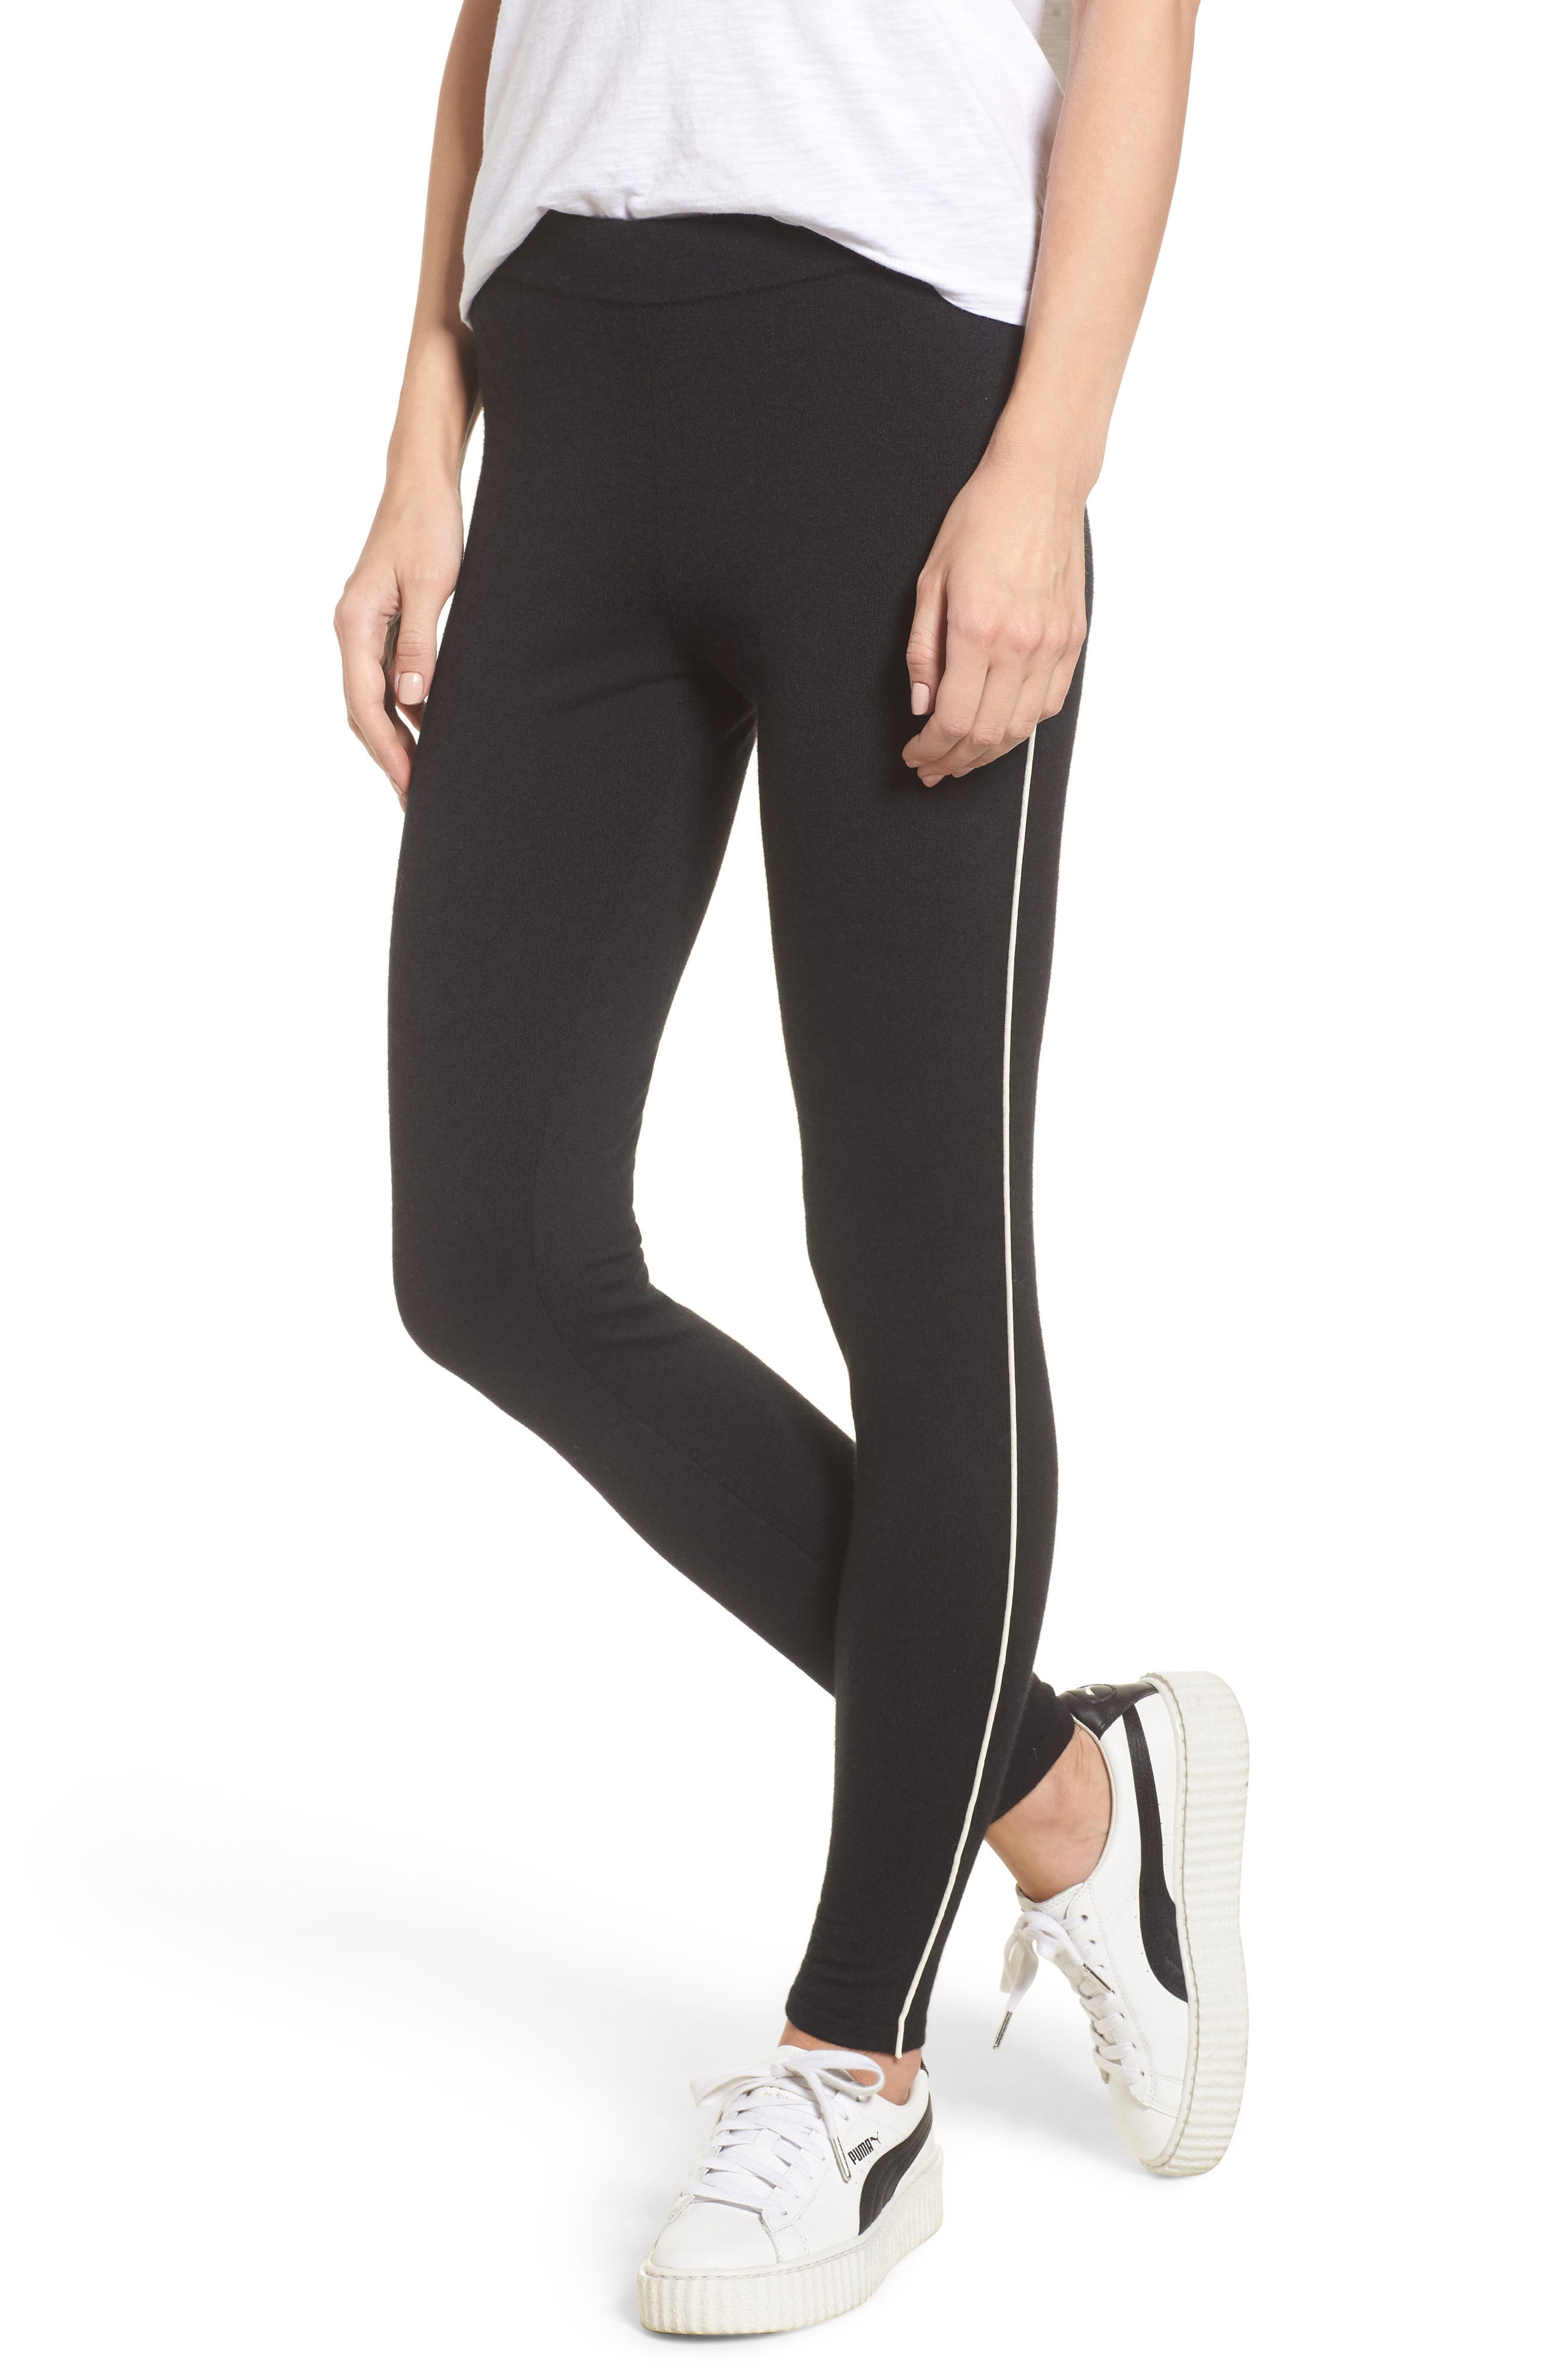 James Perse Stretch Cashmere Leggings